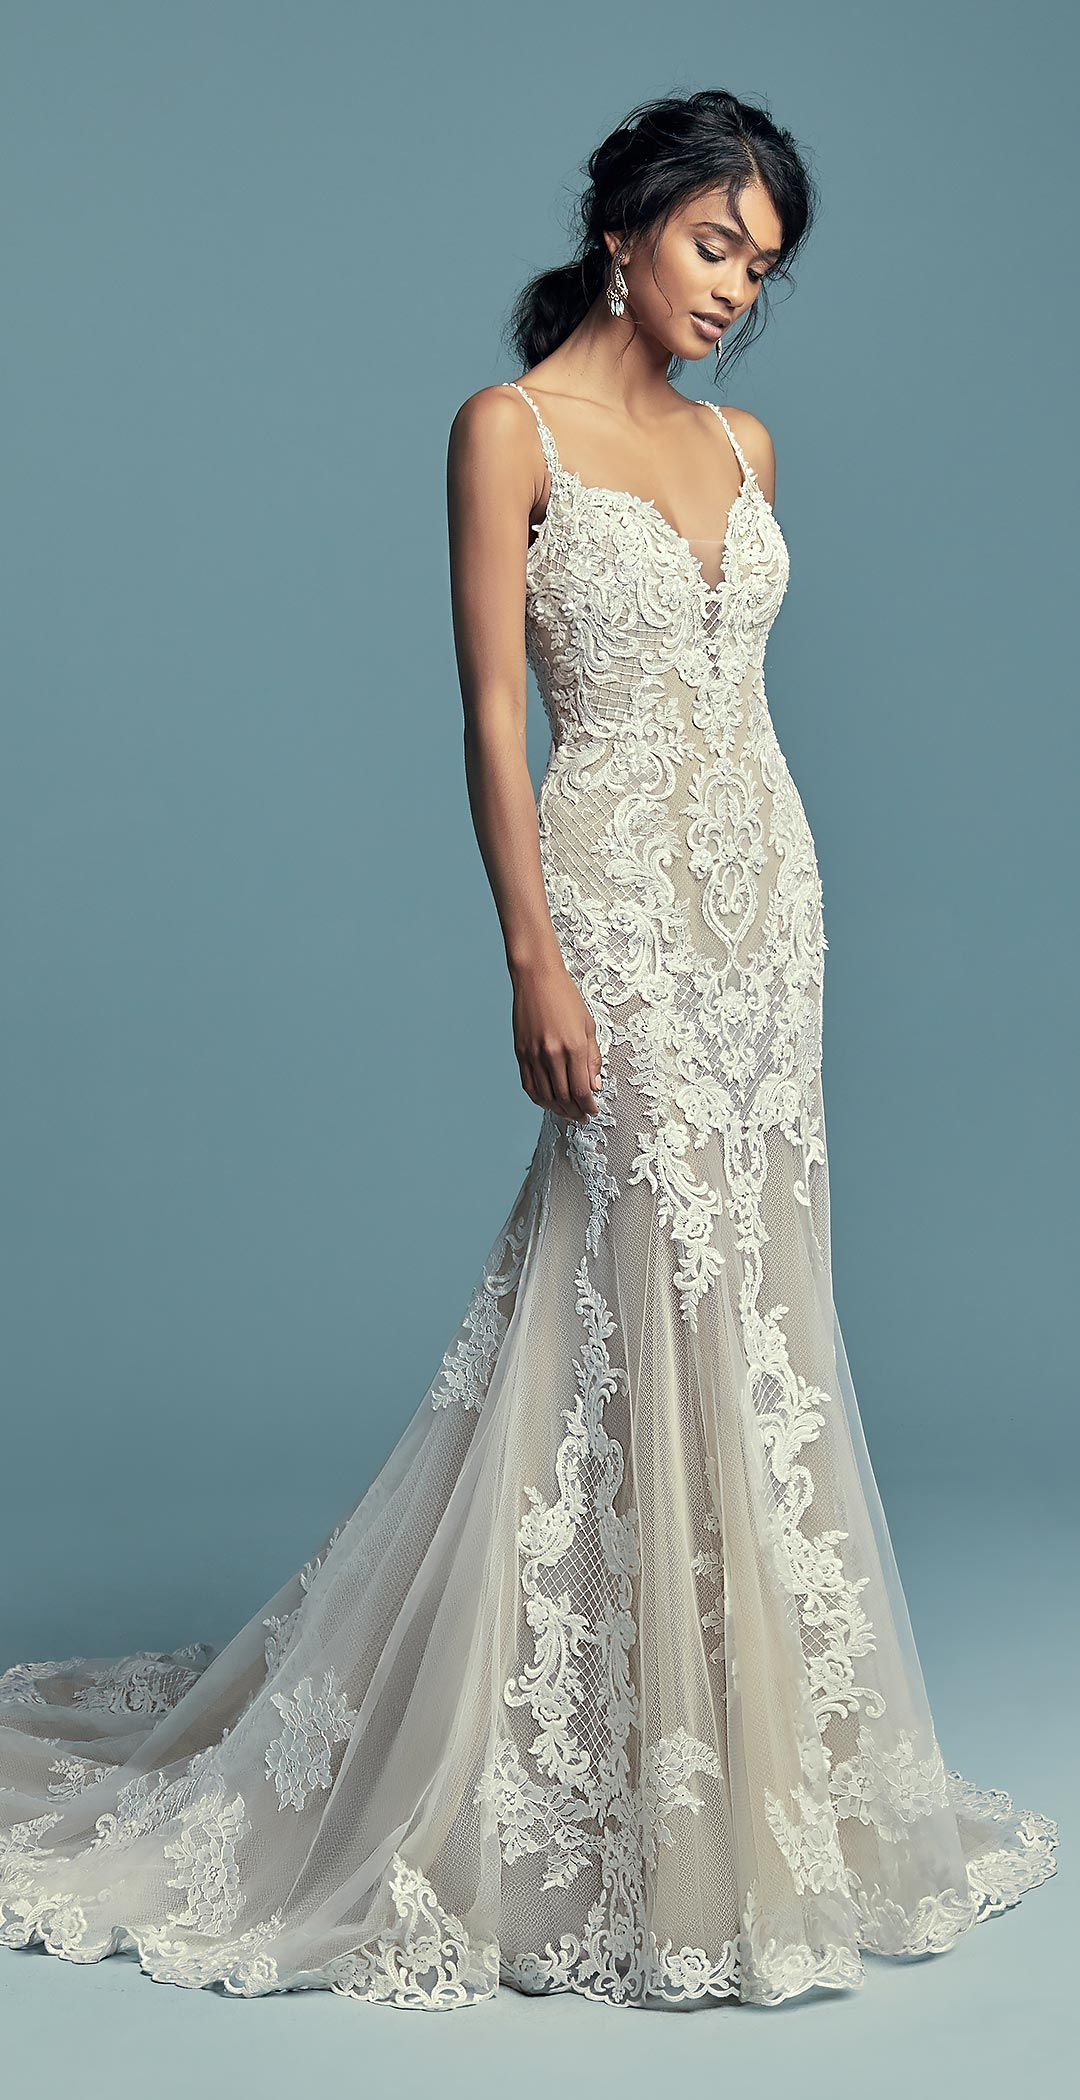 Maggie Sottero Wedding Dresses | Embroidered lace, Bridal collection ...